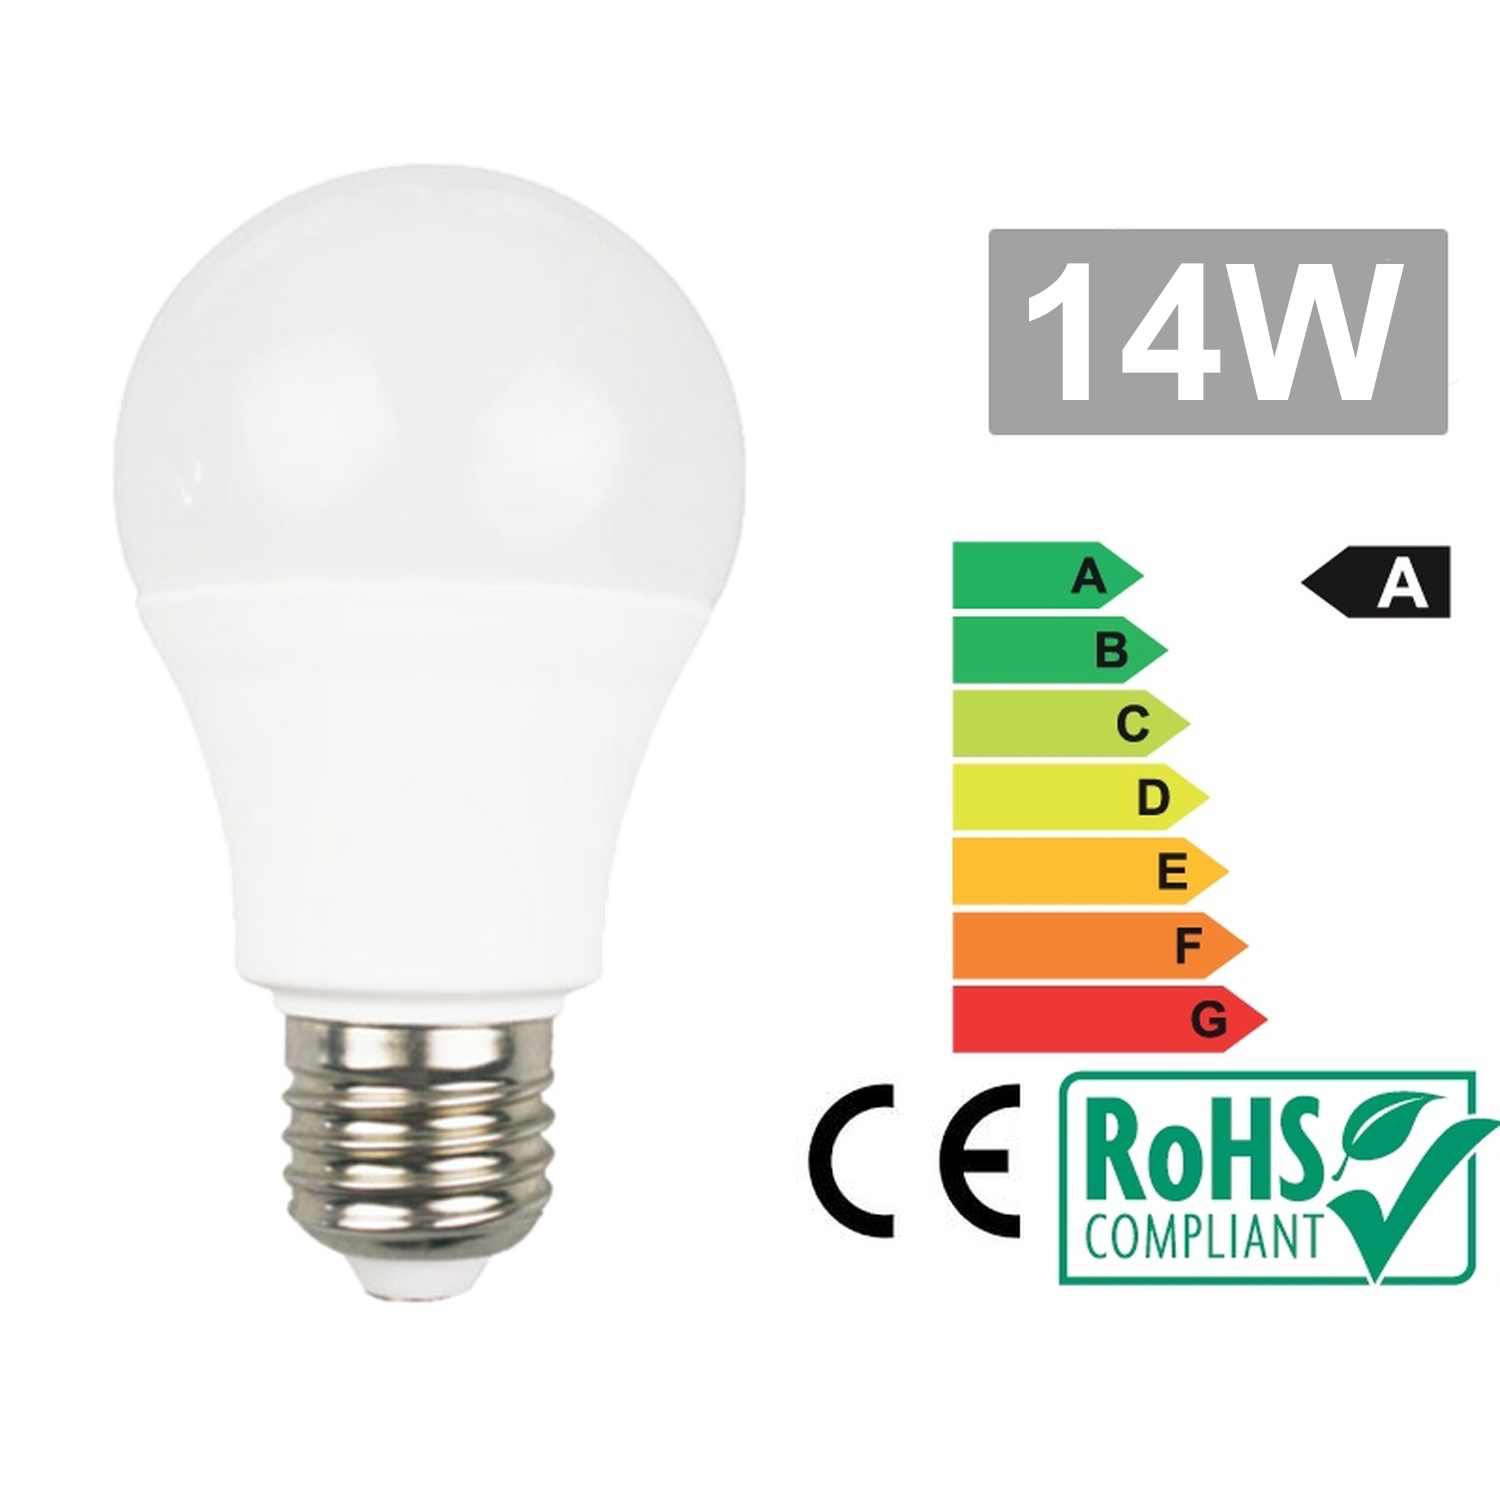 Led bulb E27 14W 6500k cold white